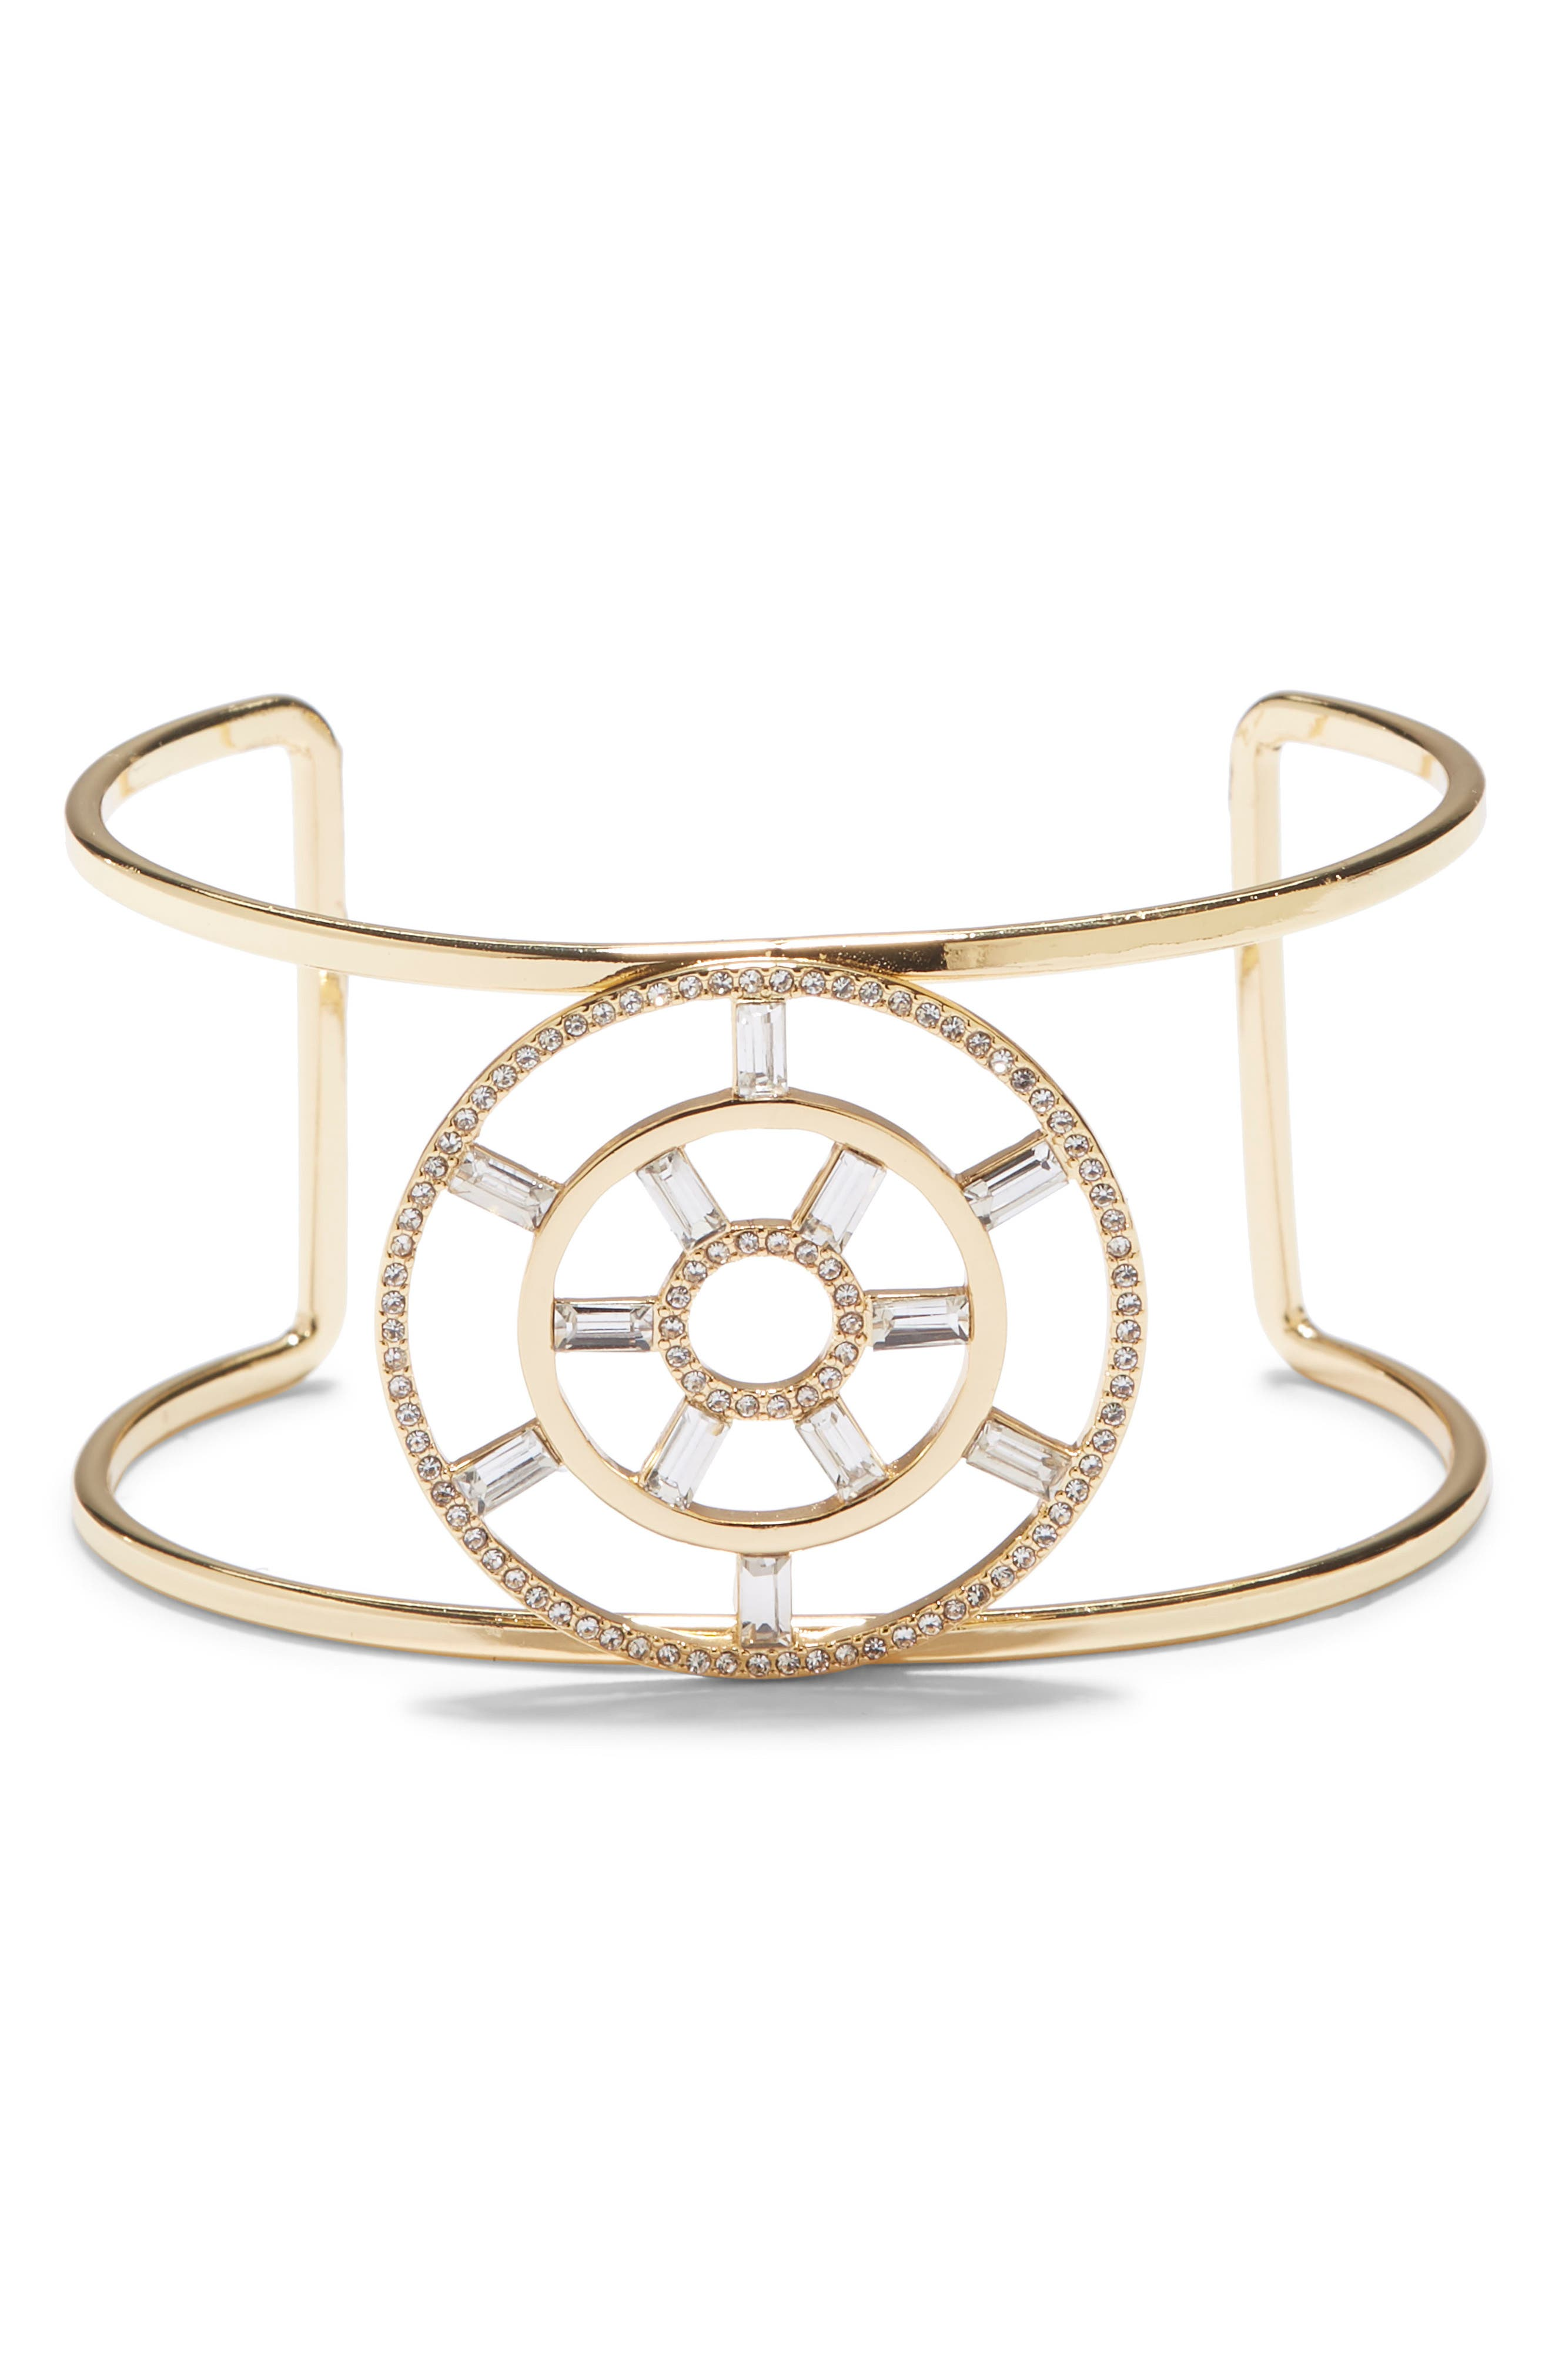 Image of Vince Camuto T Cuff Bracelet